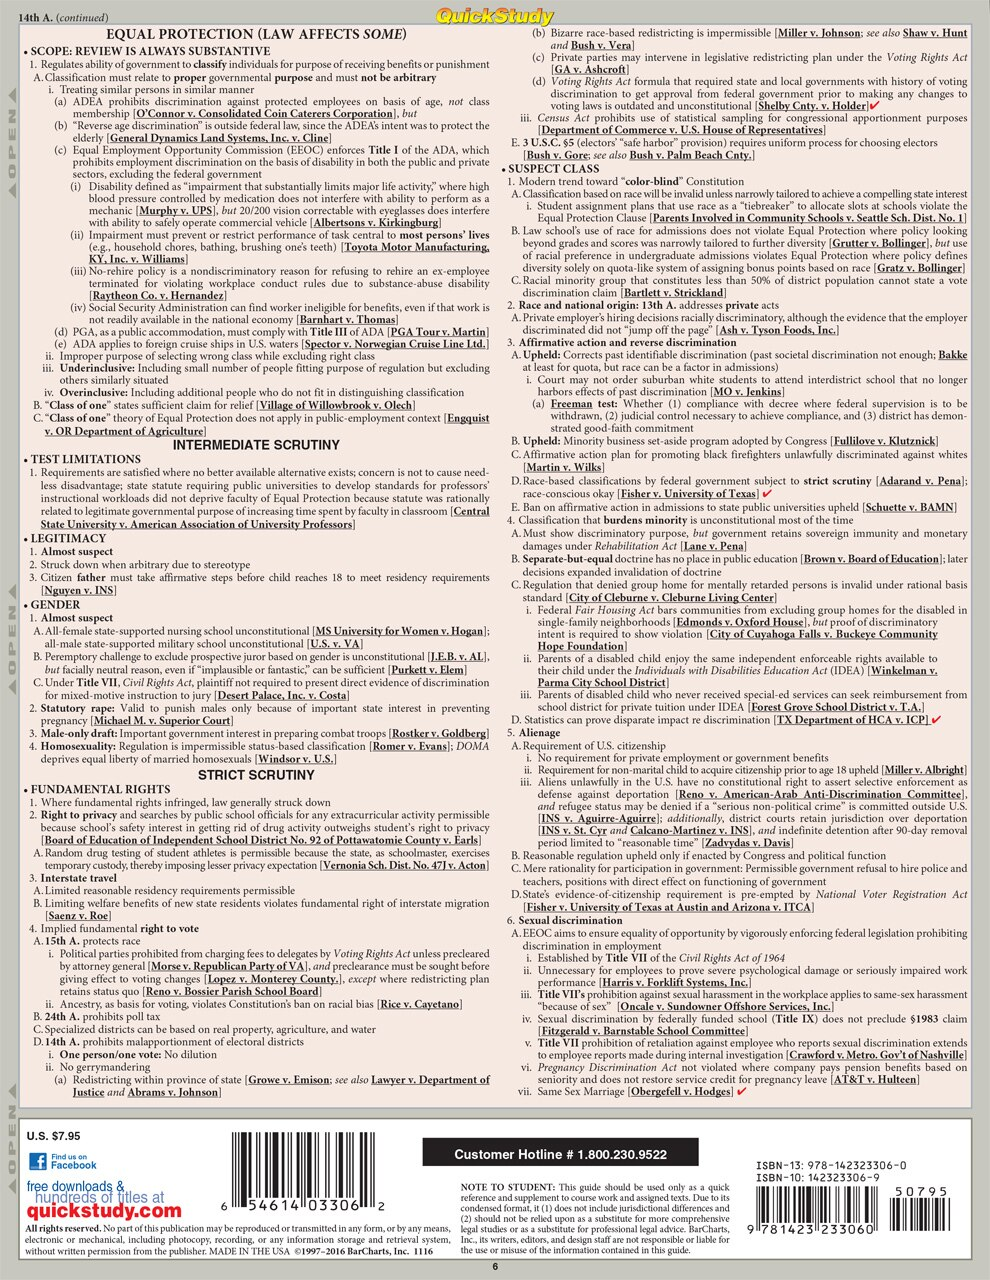 Quick Study QuickStudy Constitutional Law Laminated Reference Guide BarCharts Publishing Legal Guide Back Image